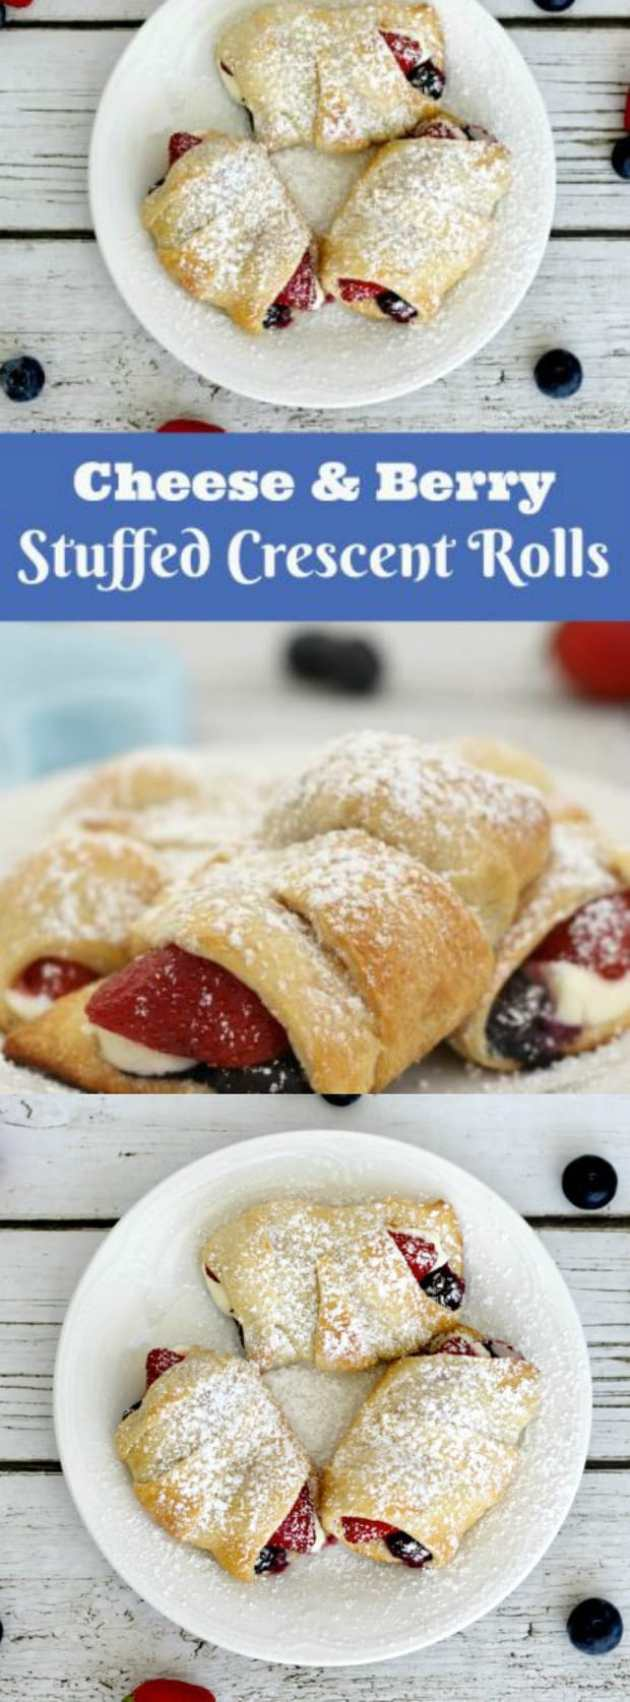 Cheese And Berry Stuffed Crescent rolls longpin